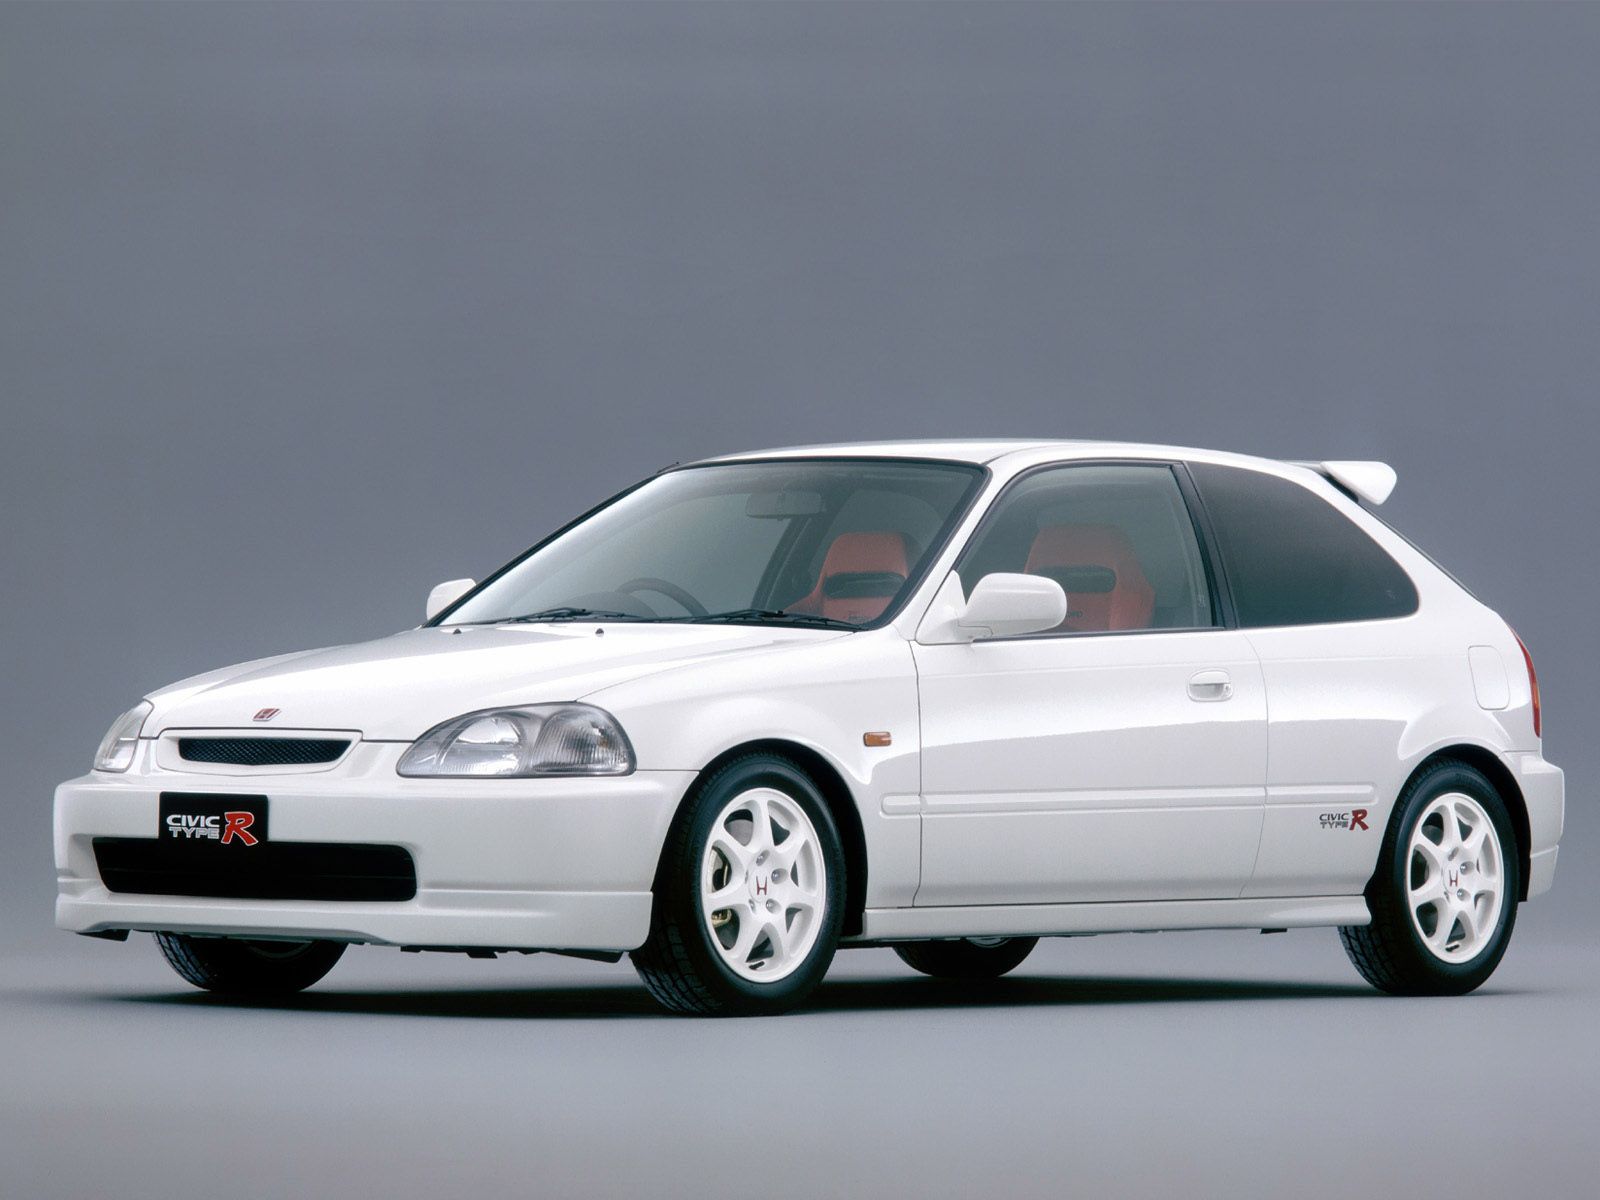 Honda Civic Type-R 3 Door 1997